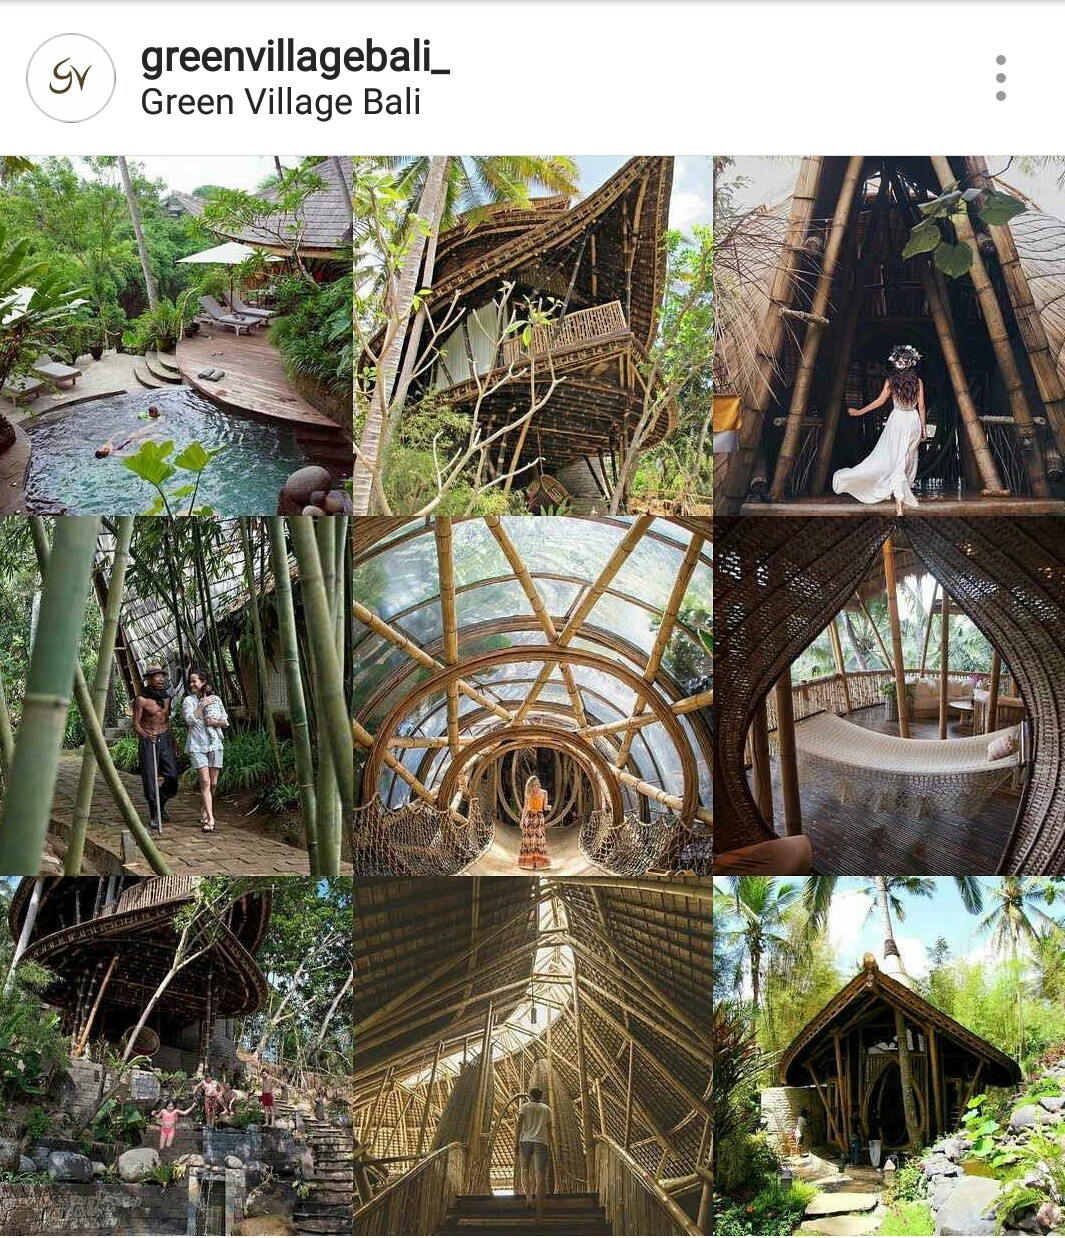 liburananak_greenvillagebali